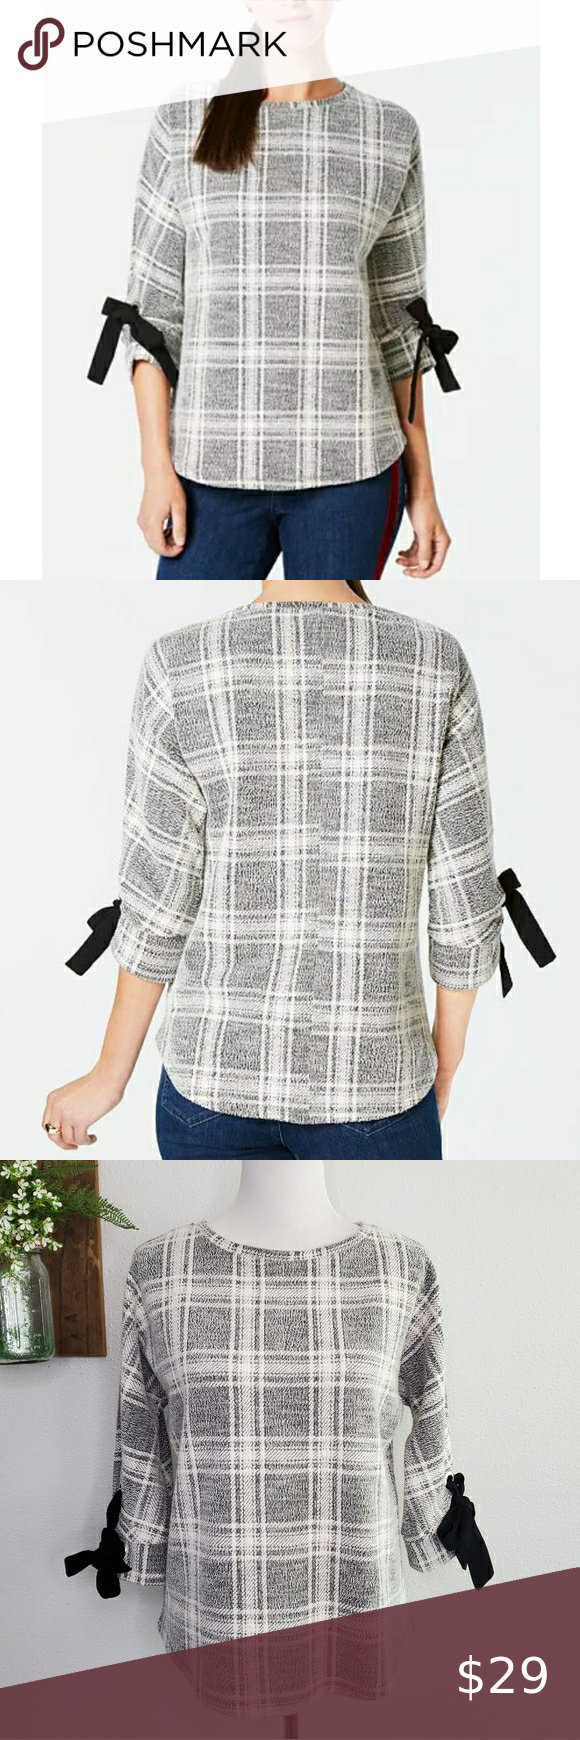 Charter Club Plaid Bow Sleeve Knit Textured Top PM